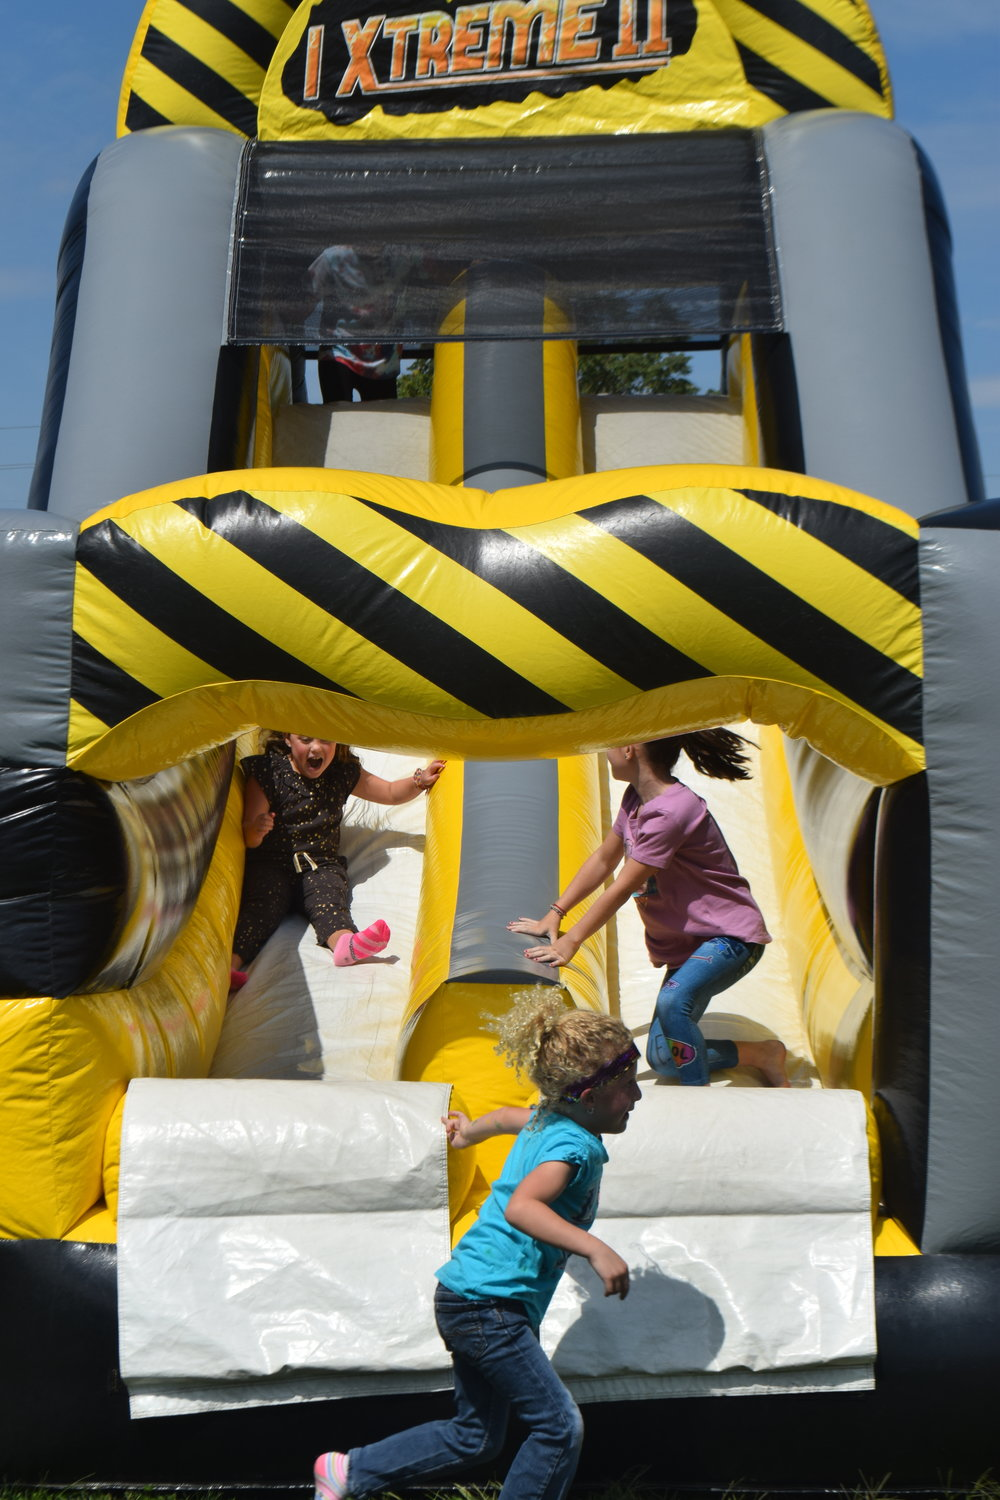 The inflatable slide appeared to be a fun attraction for the children.